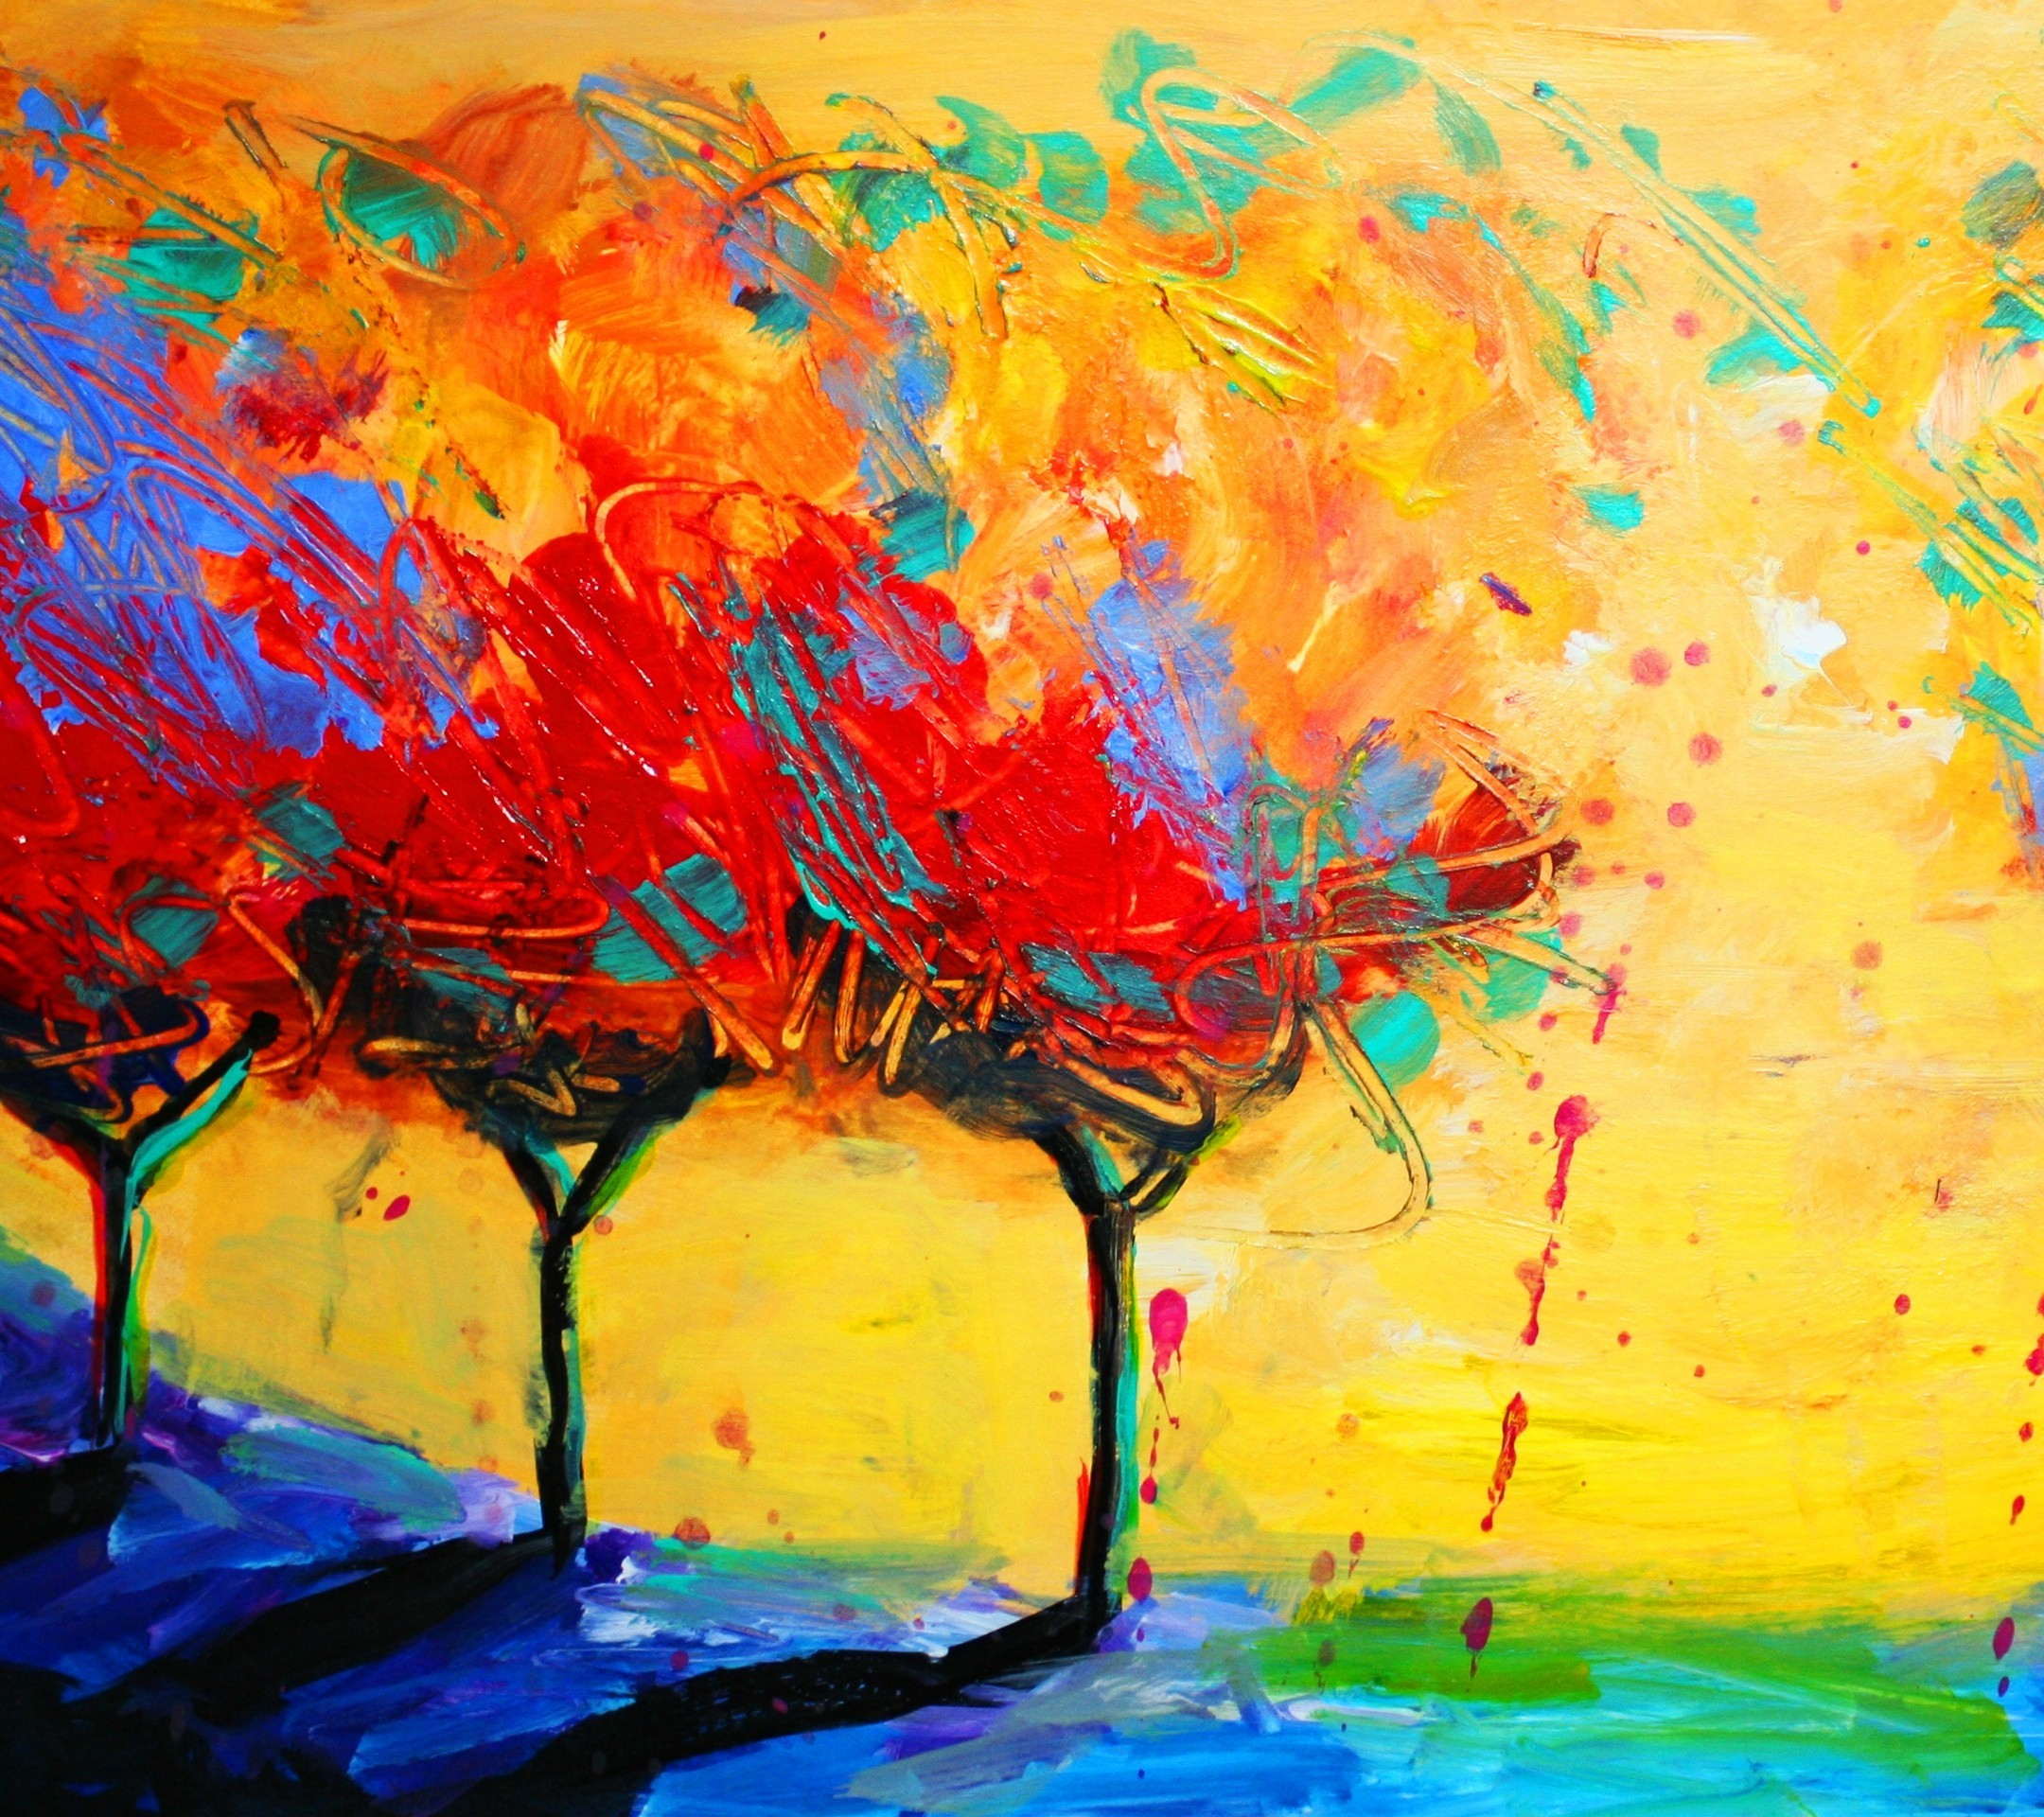 Painting: Abstract Painting Wallpaper ·①